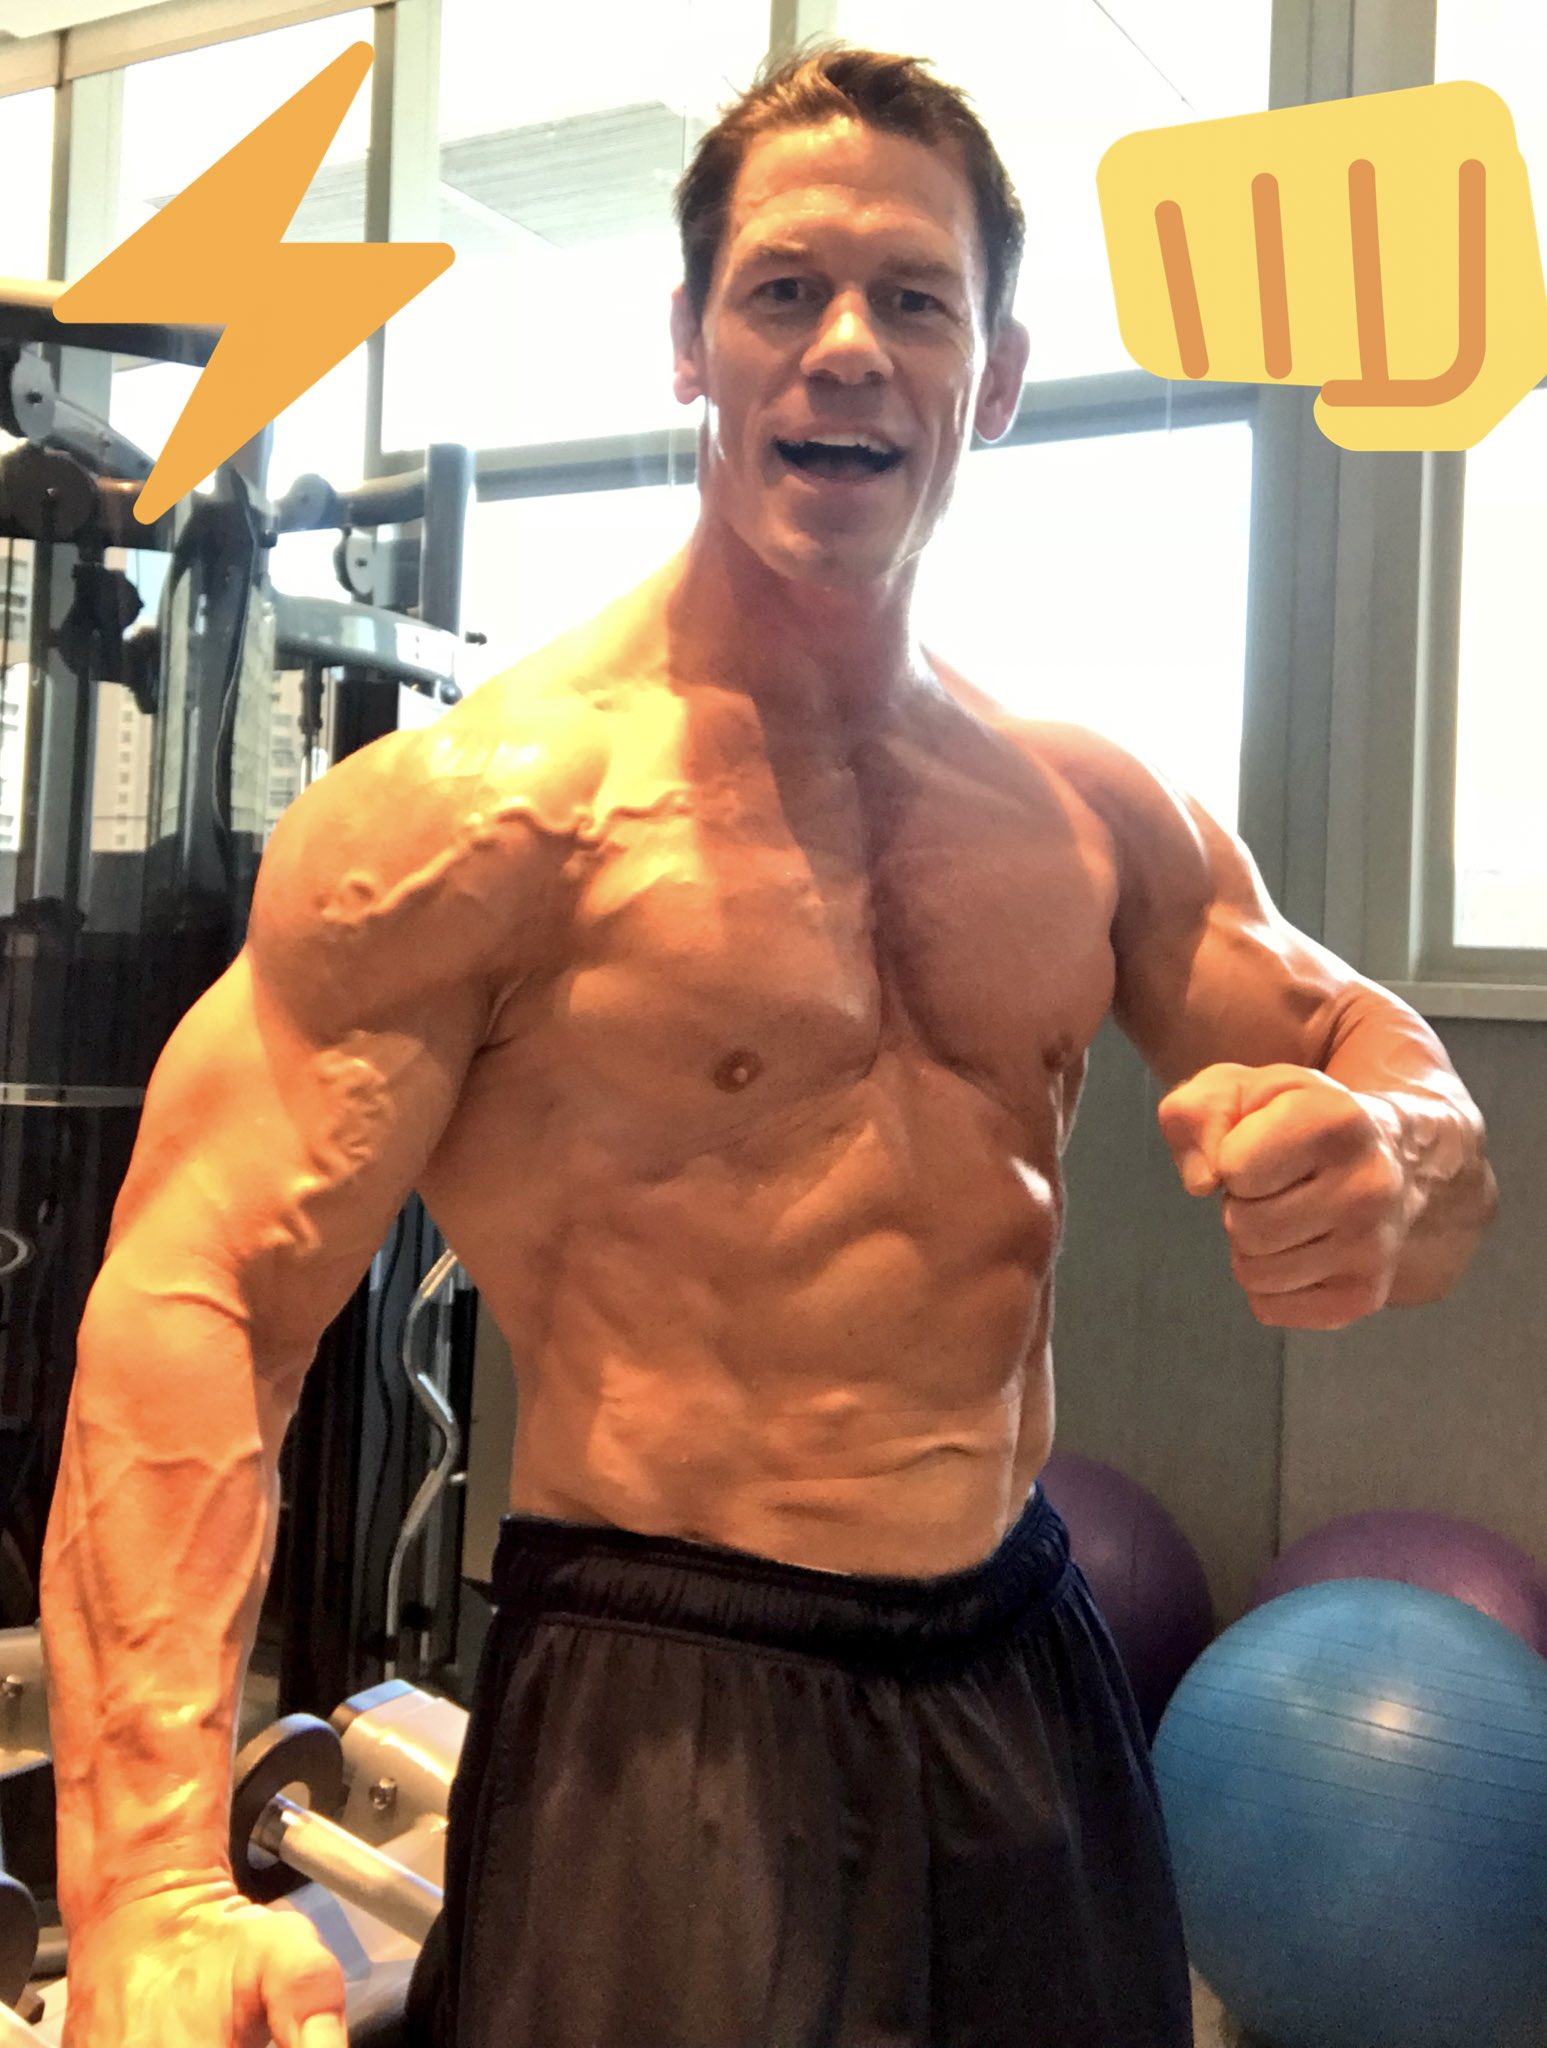 John cena on twitter 4 days wwe 6thmod aka - John cena gym image ...